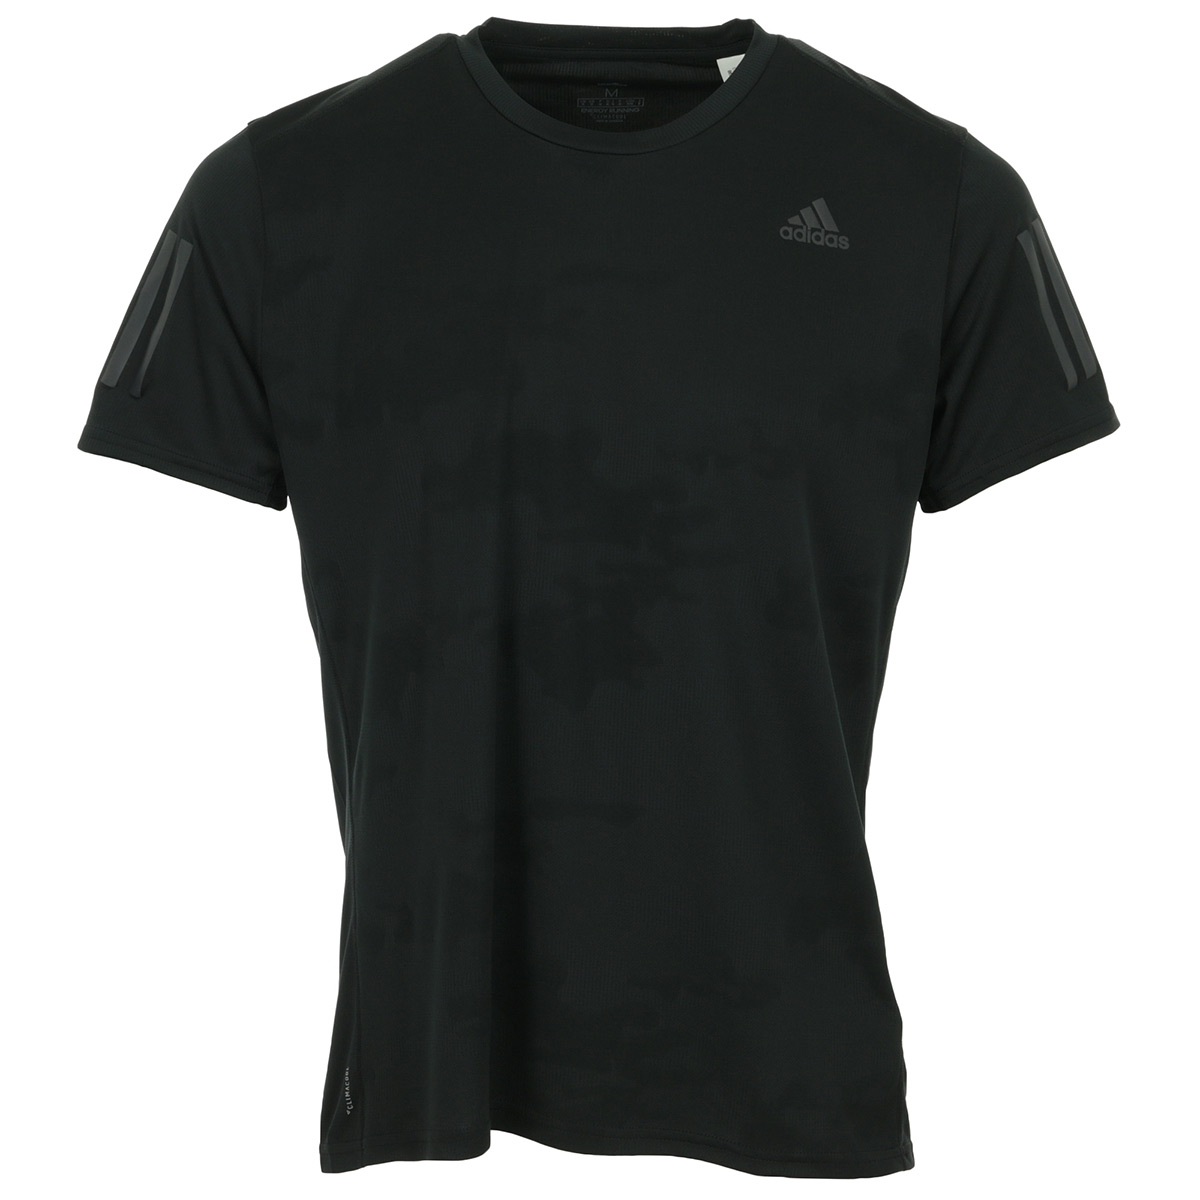 Superbe Tee shirt Adidas Homme Taille M